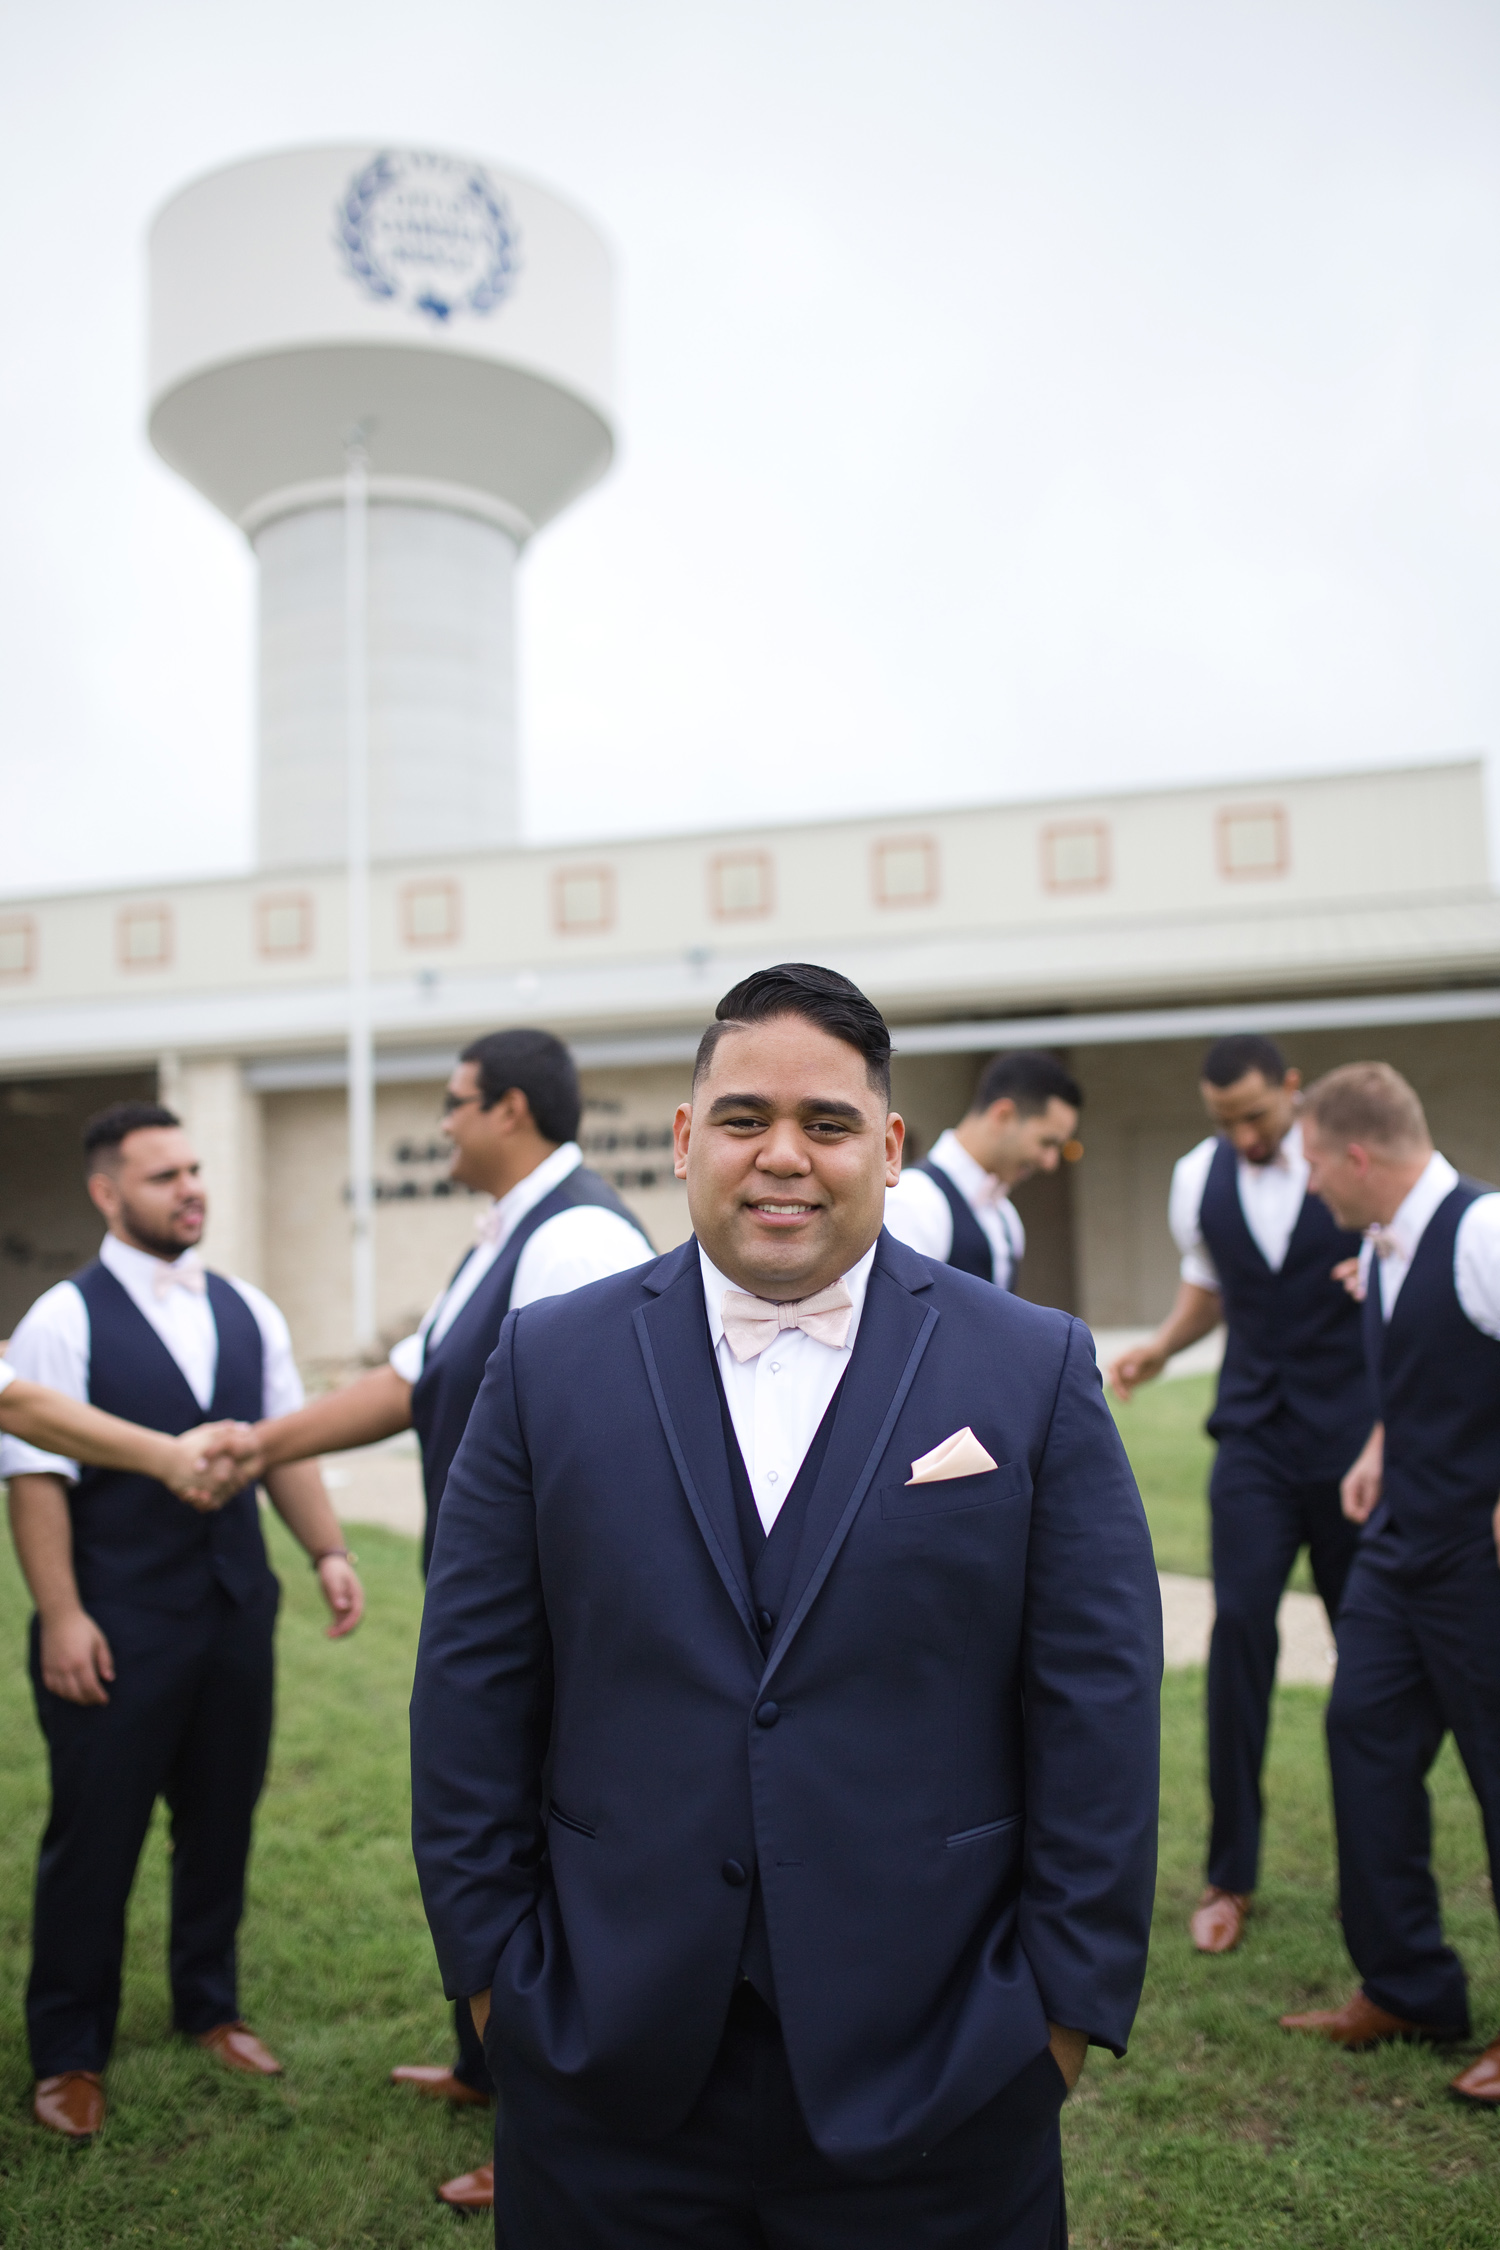 San Antonio Texas Hill Country Garden Ridge Wedding Photographer Photography